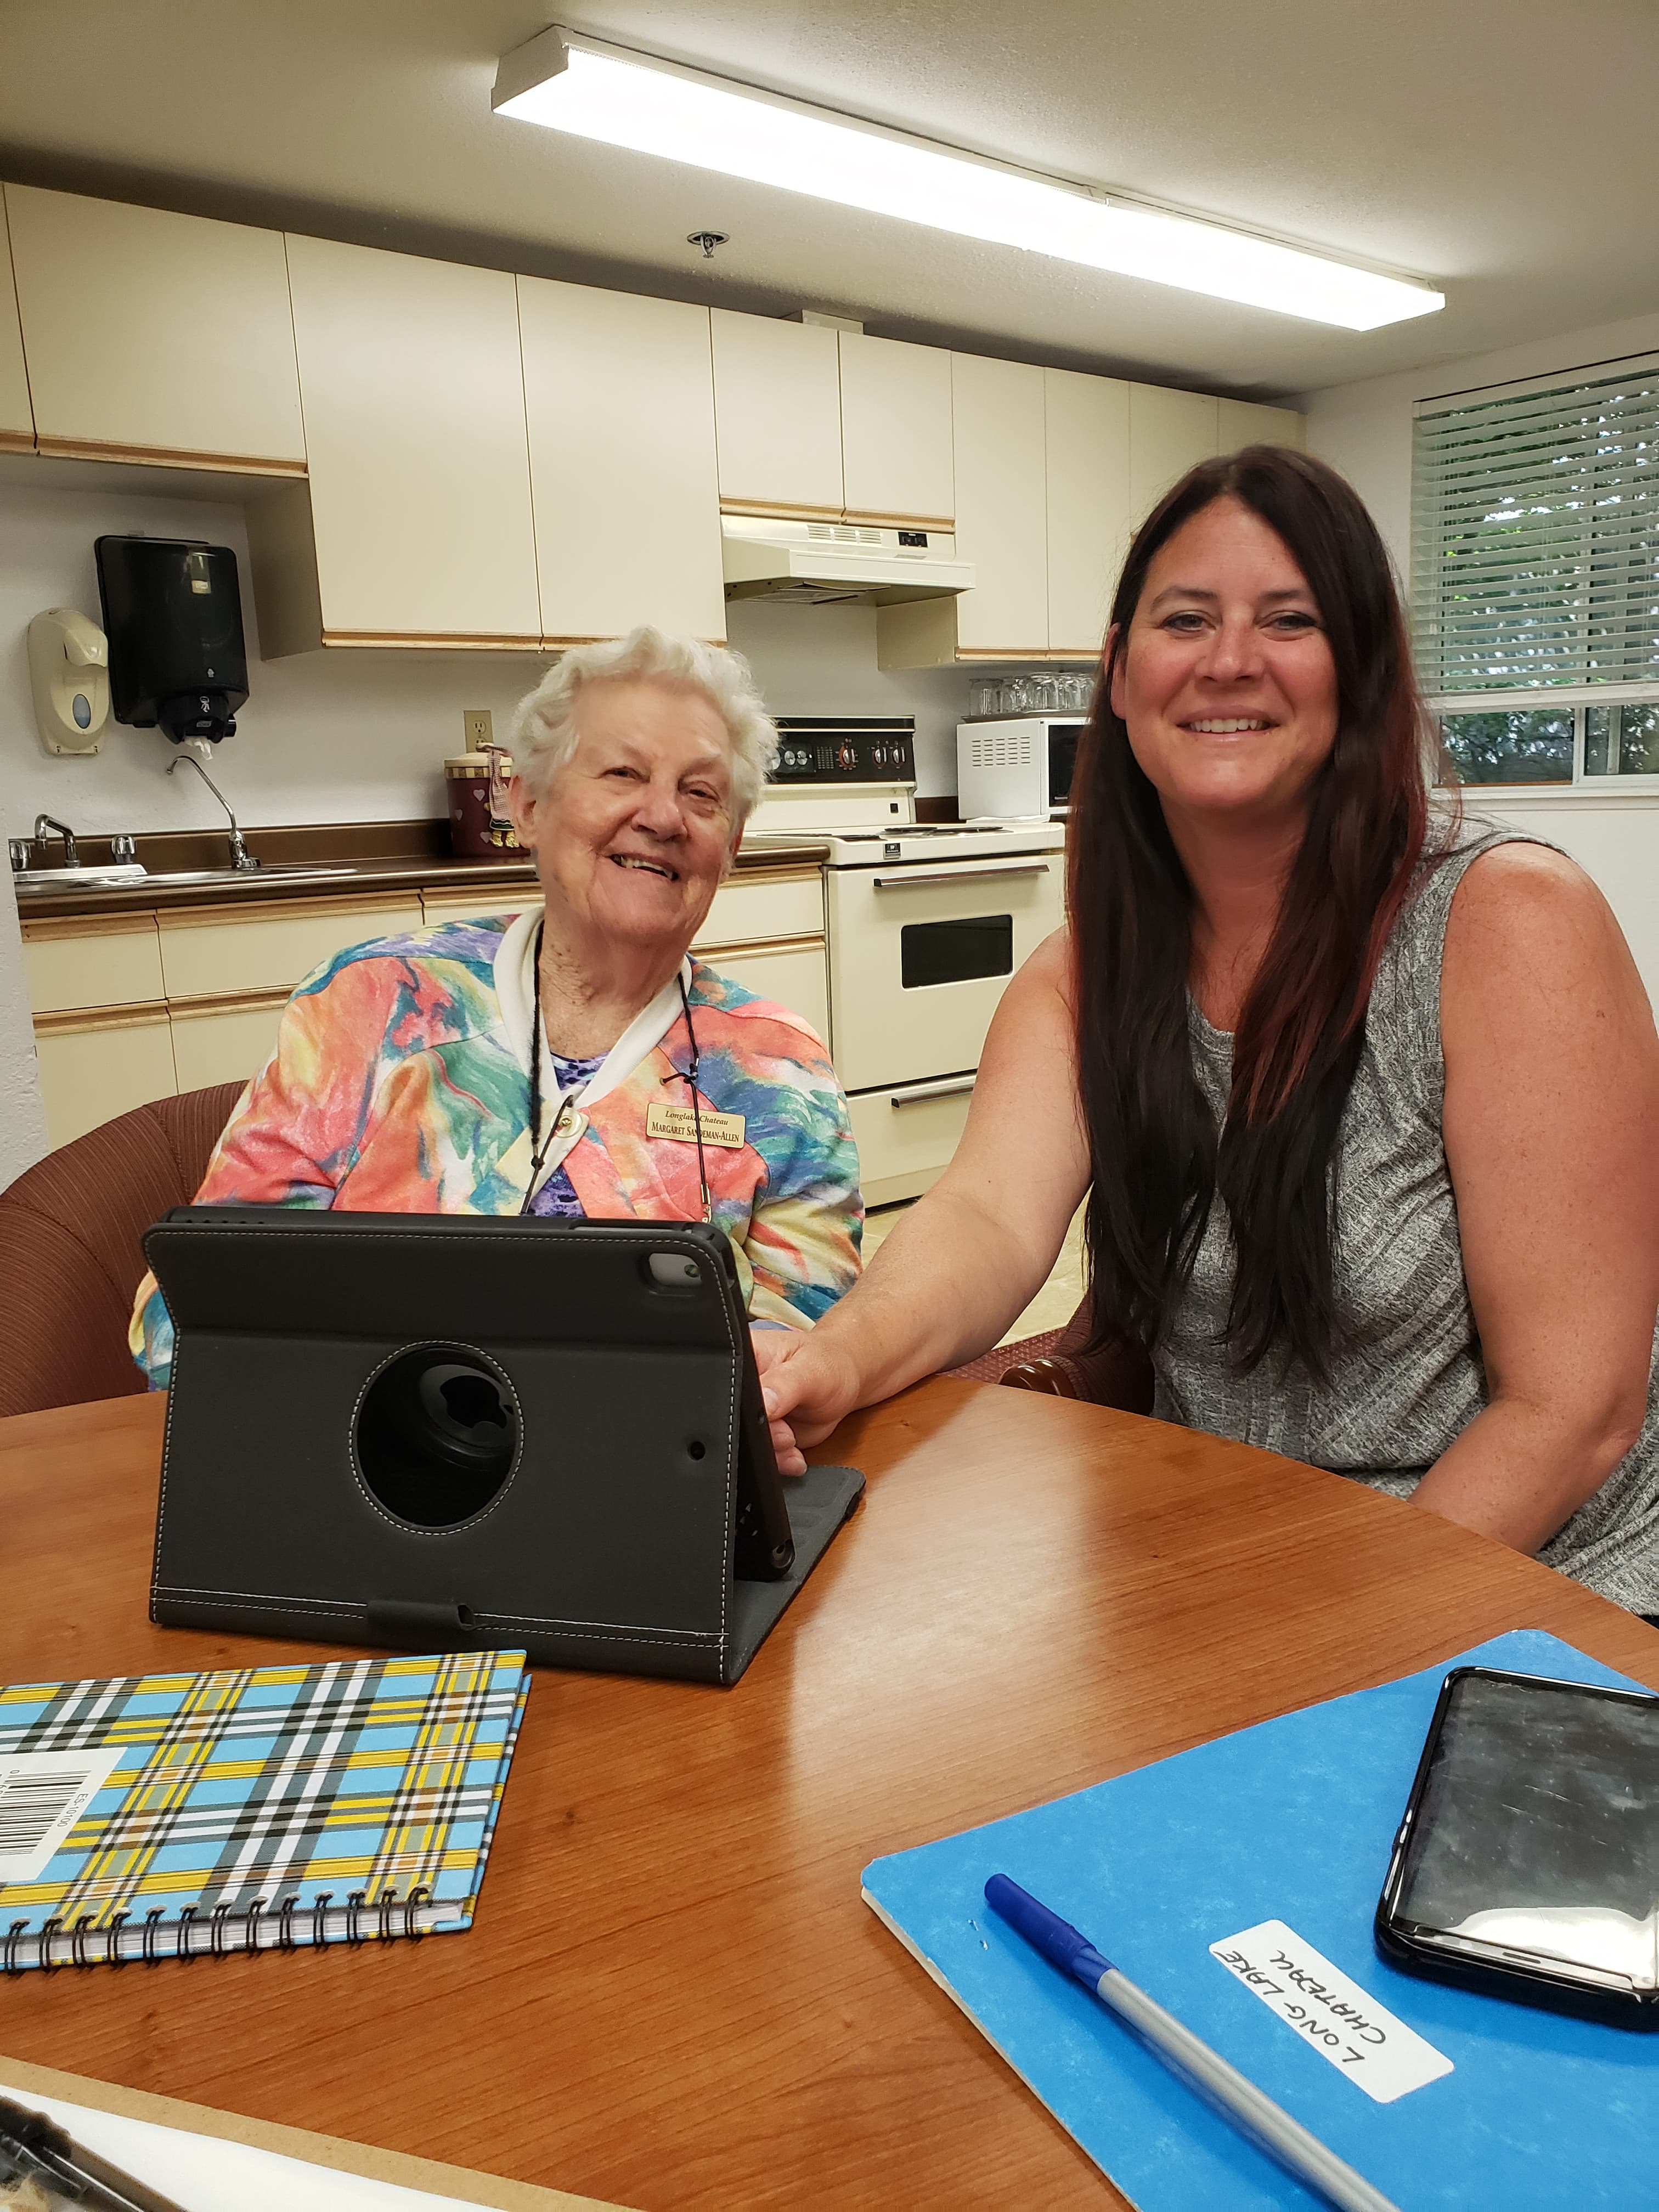 a senior lady sitting with a younger woman in front of a tablet, smiling